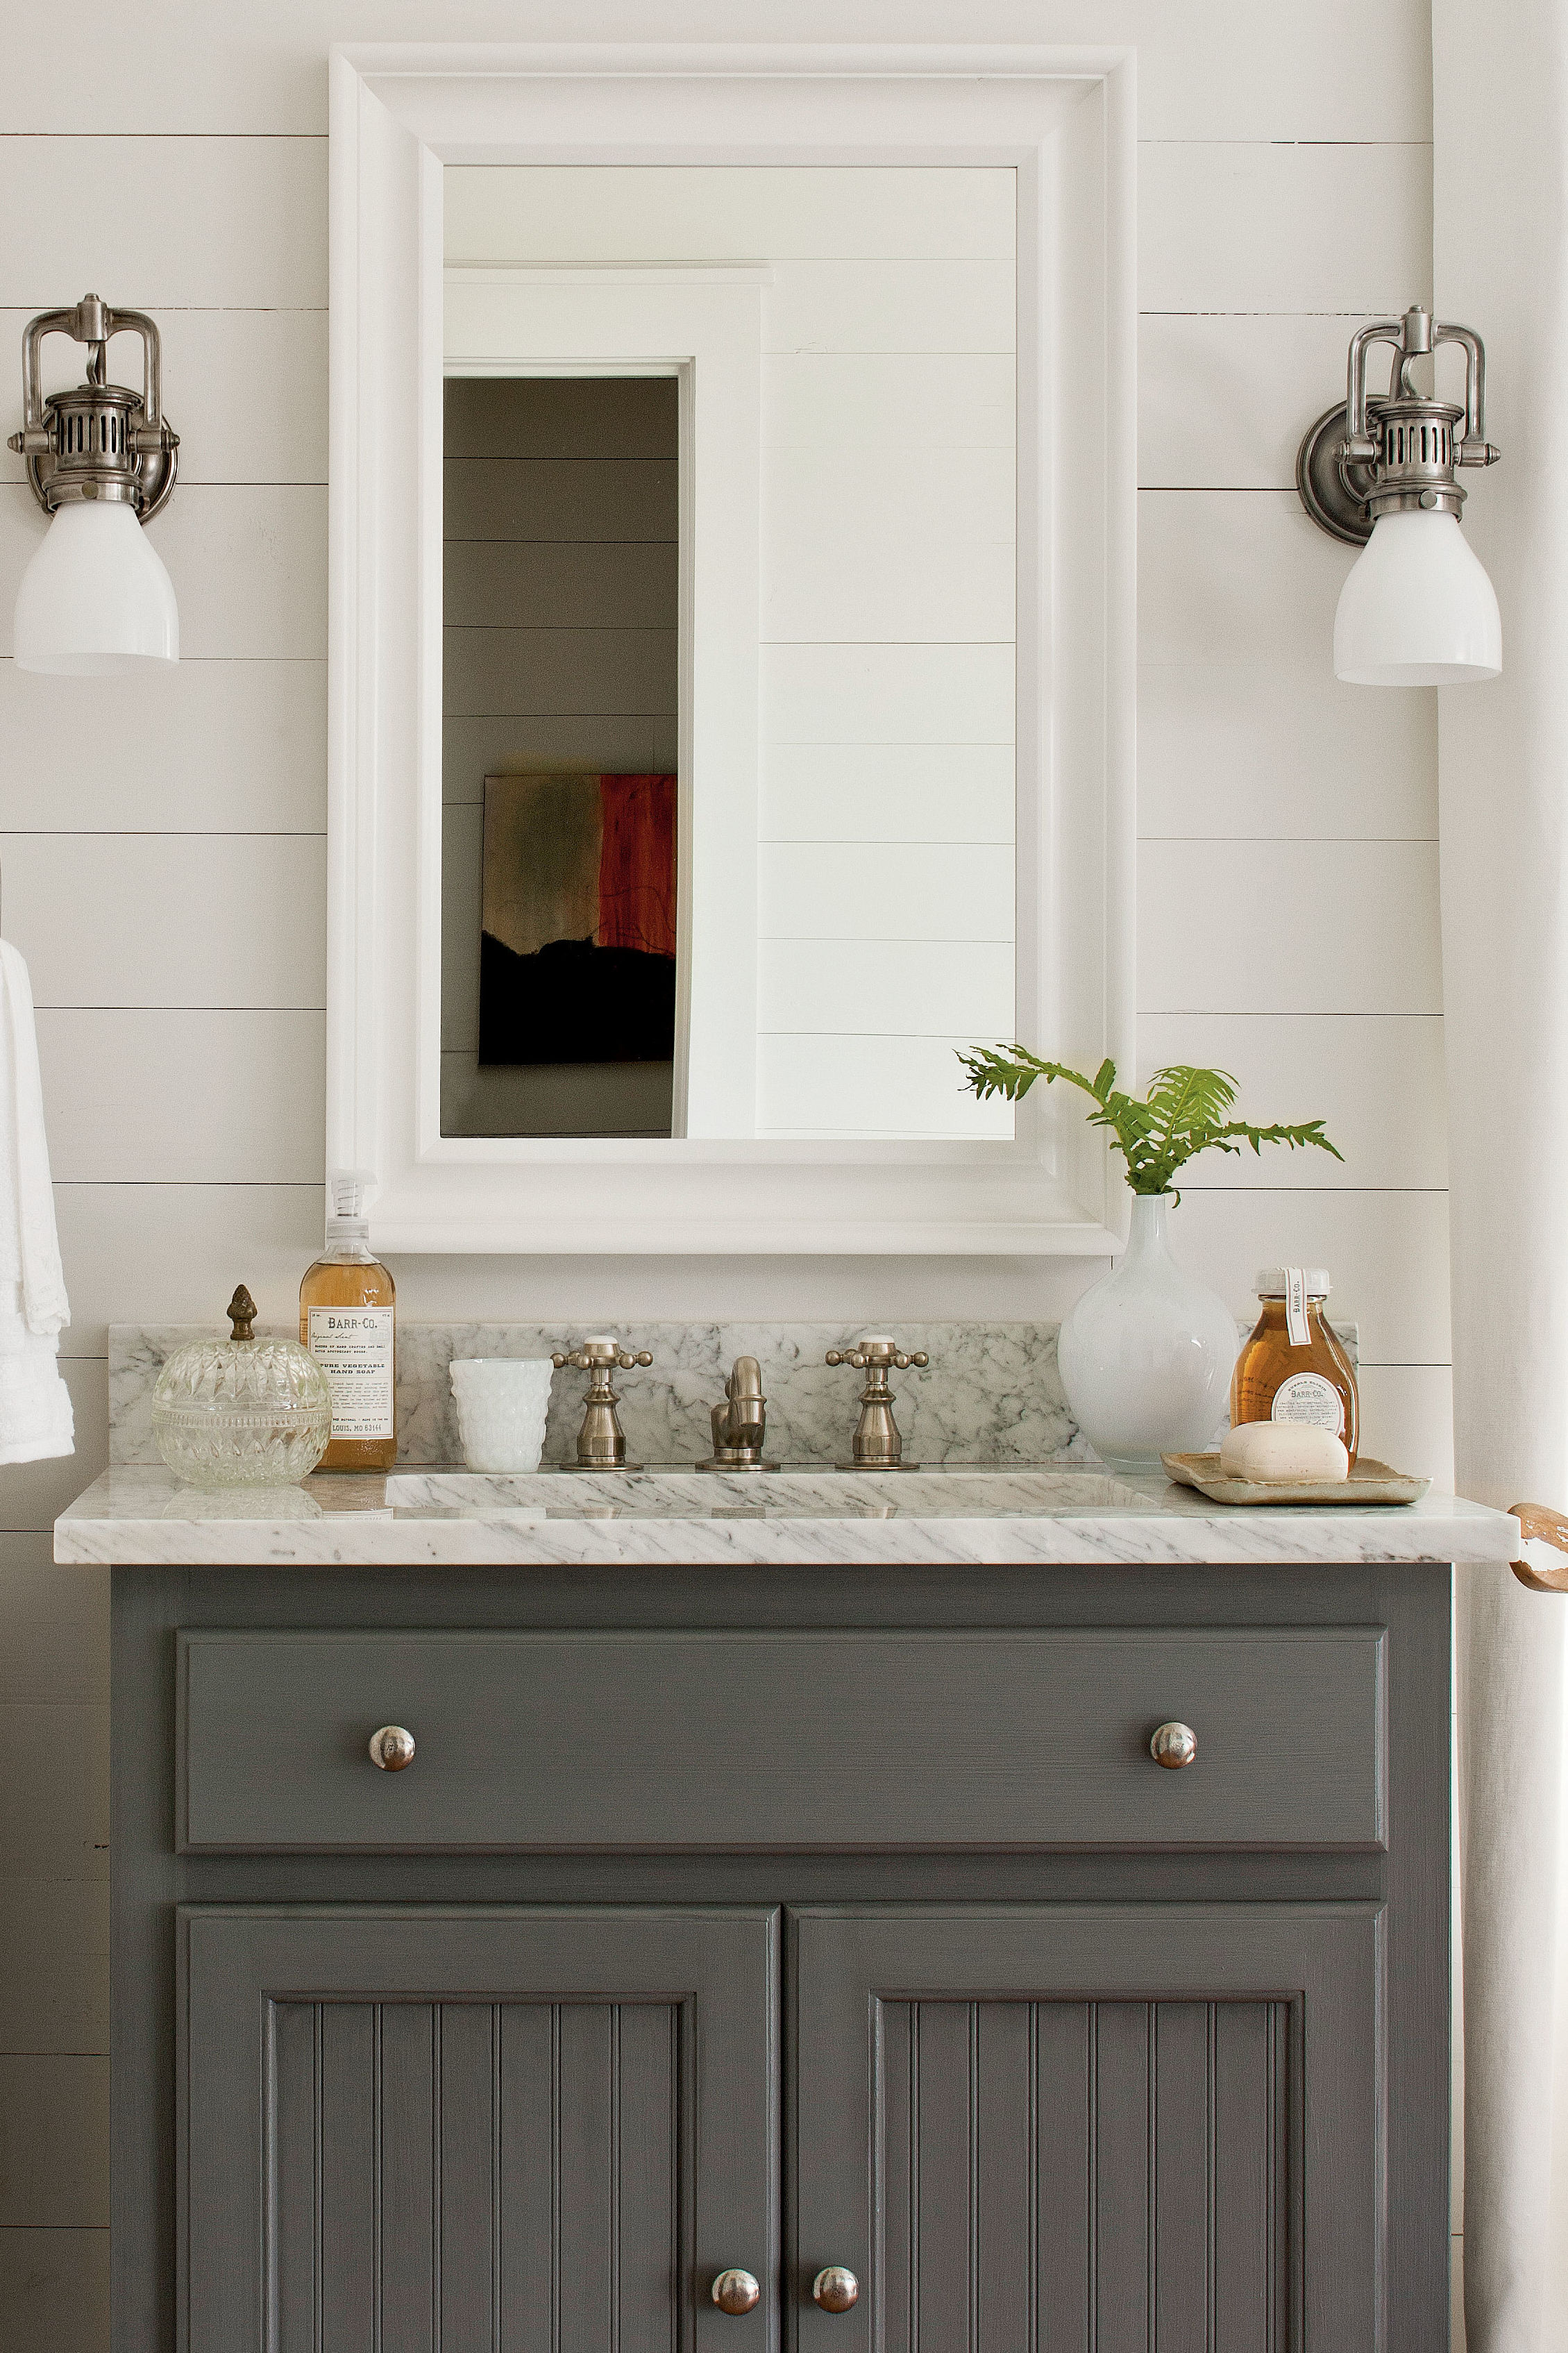 This One Tip Can Save You Thousands on Your Bathroom Remodel